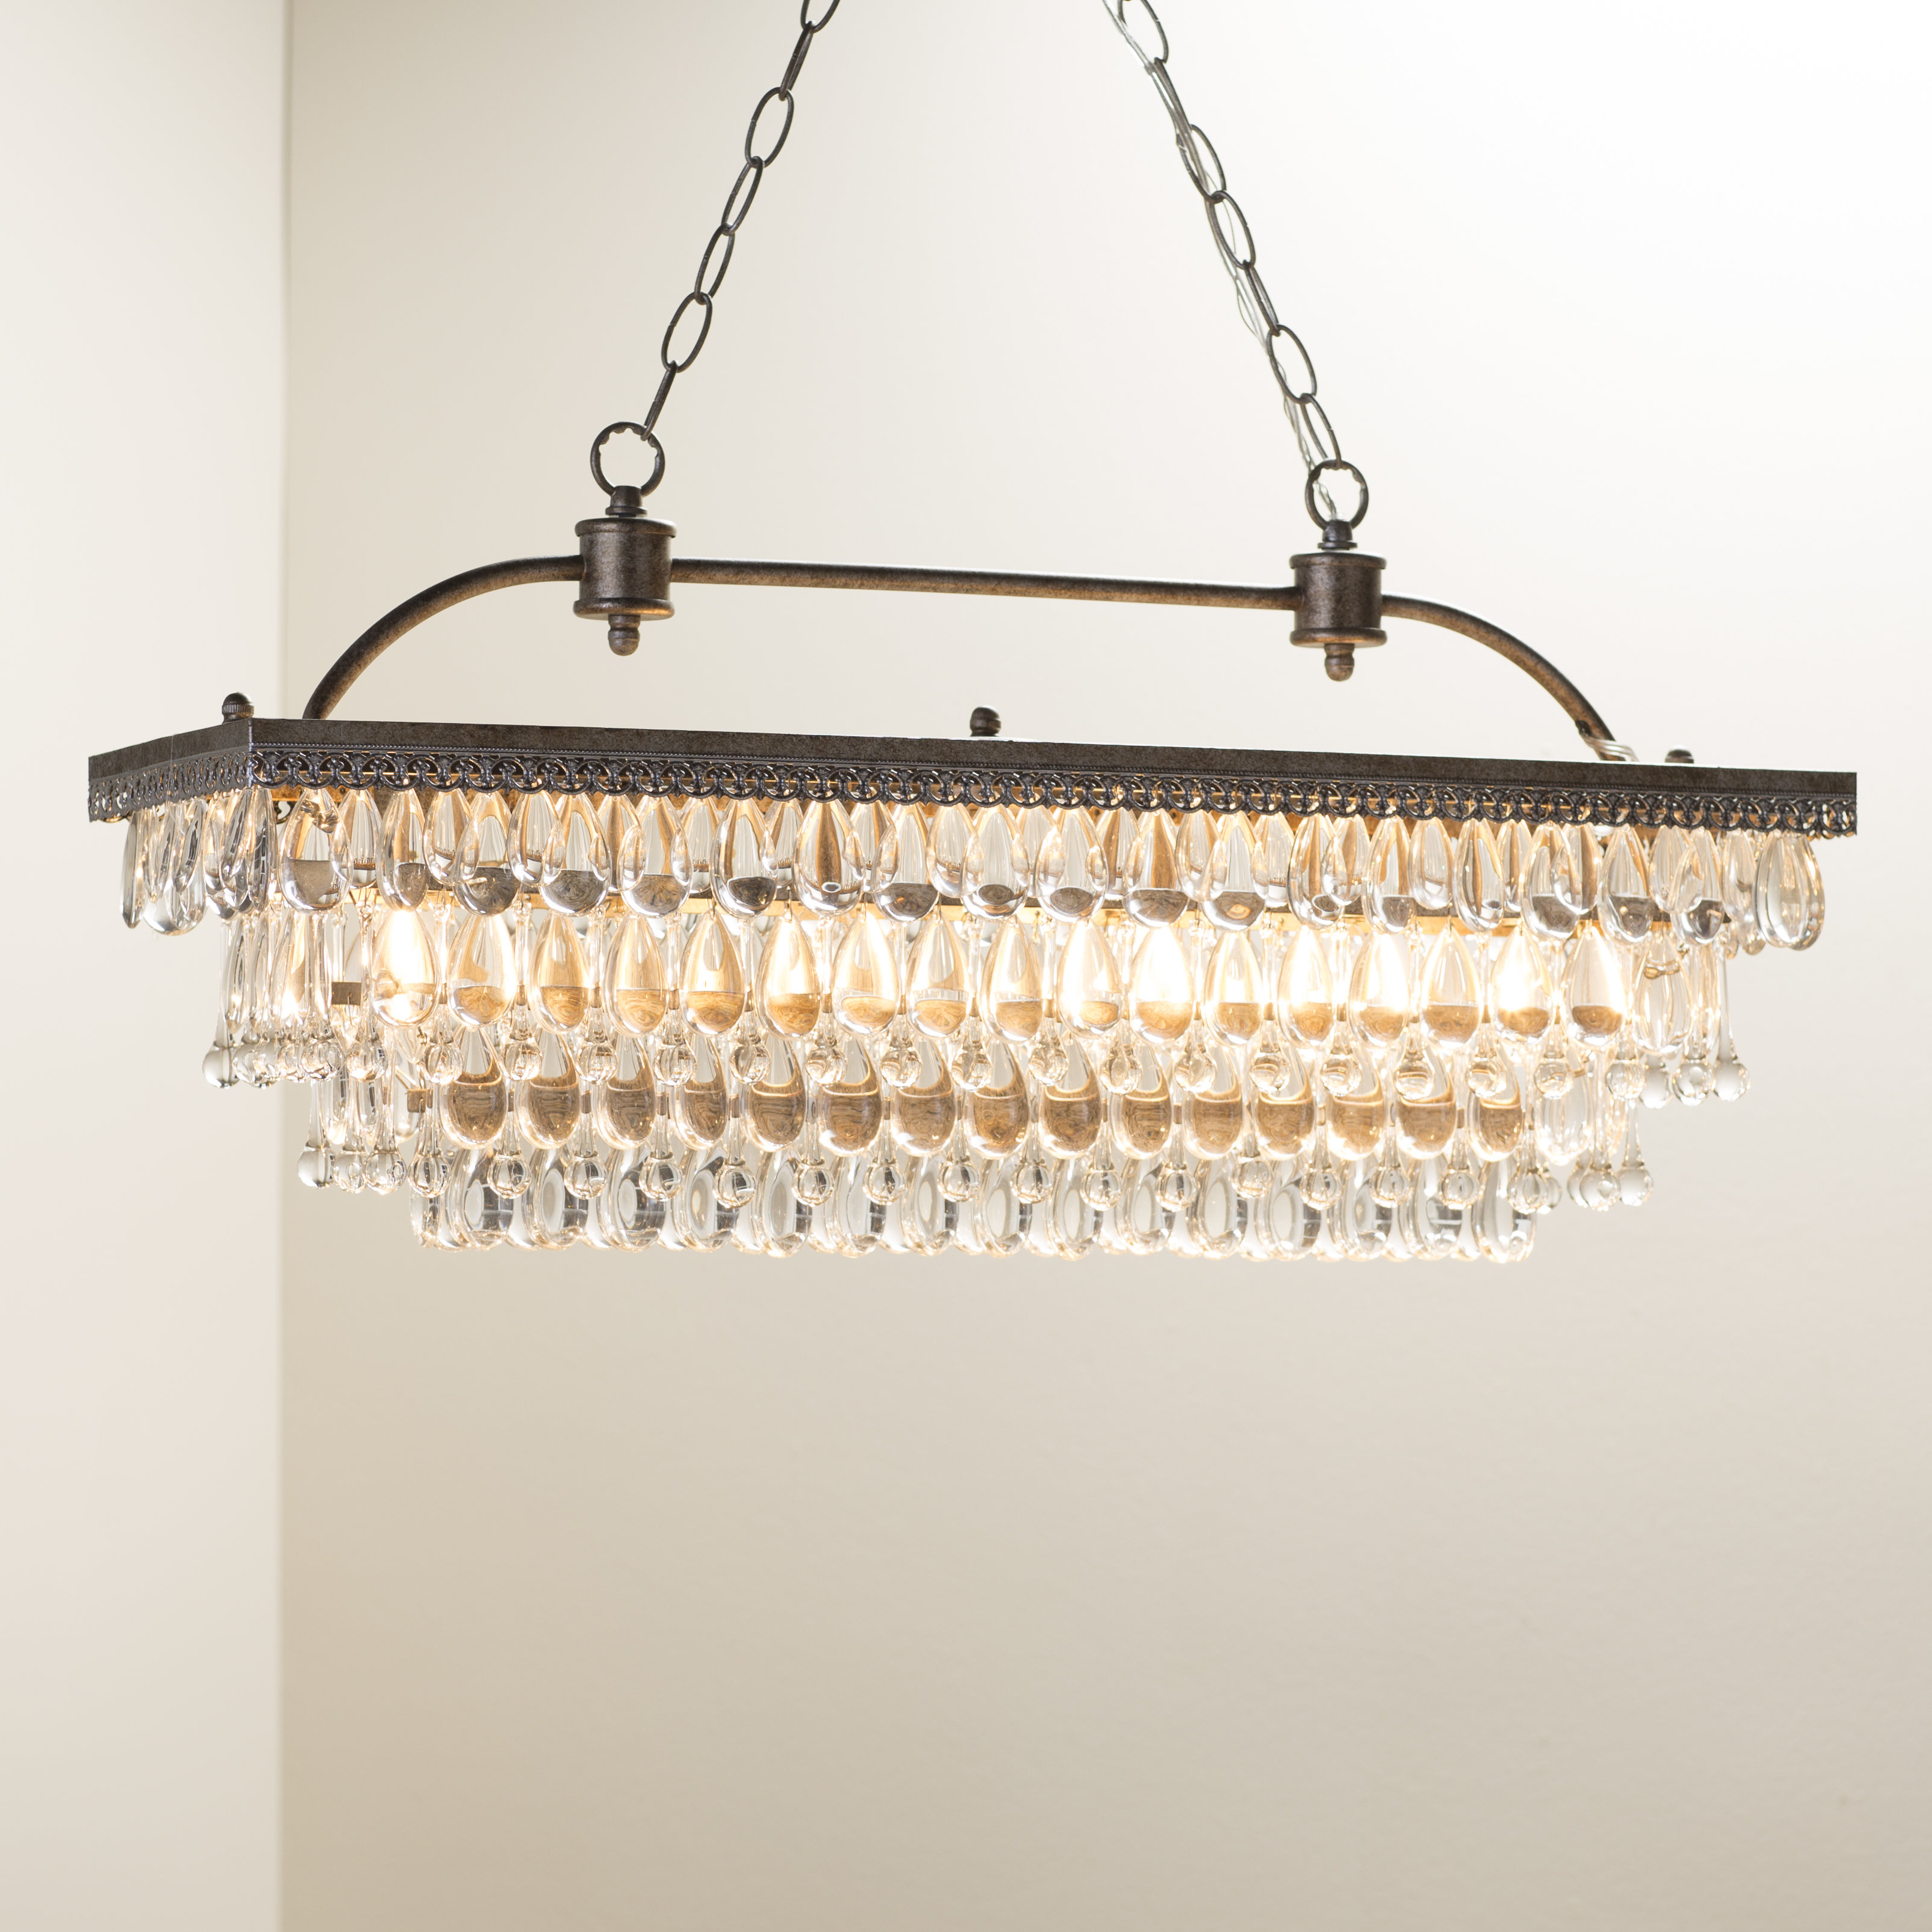 Best And Newest Mckinsey 6 Light Kitchen Island Pendant Intended For Gracelyn 8 Light Kitchen Island Pendants (View 19 of 25)